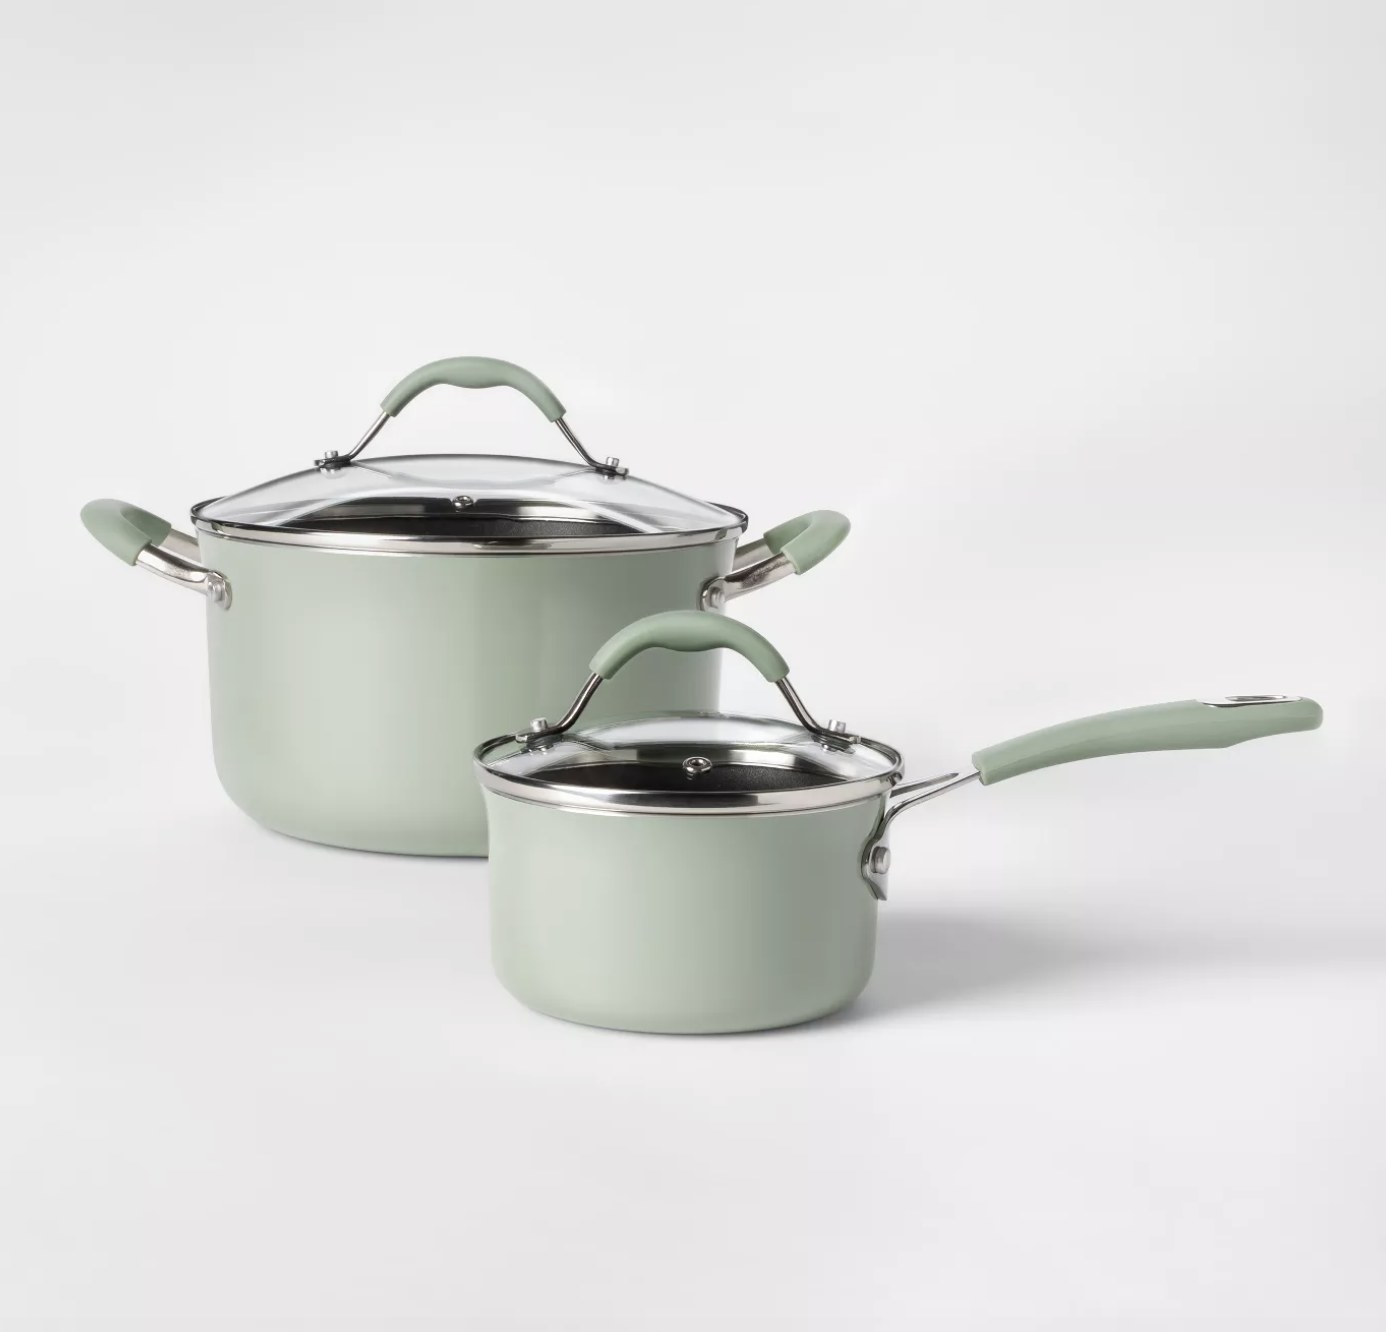 the dutch oven and sauce pan with lids in mint green